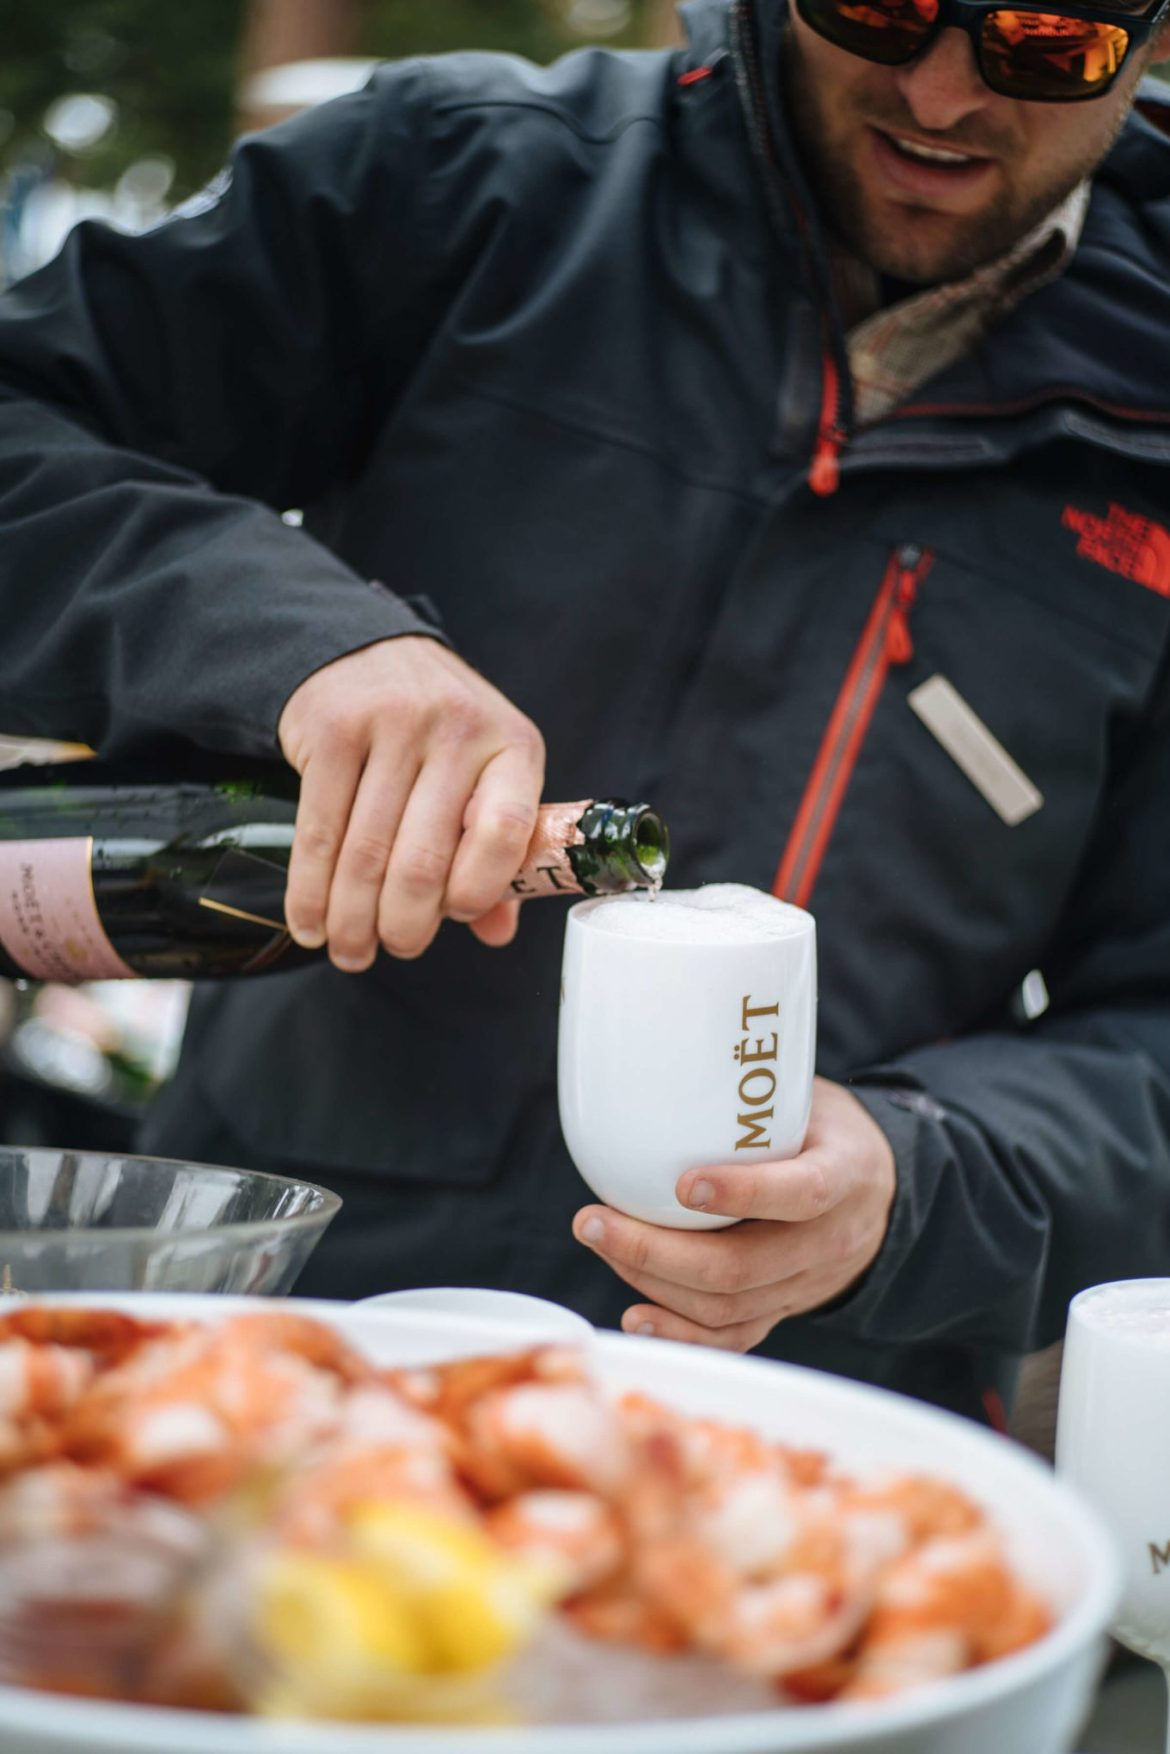 The Ritz-Carlton Lake Tahoe with shrimp and pouring Moet Chandon by the fire, The Taste Edit